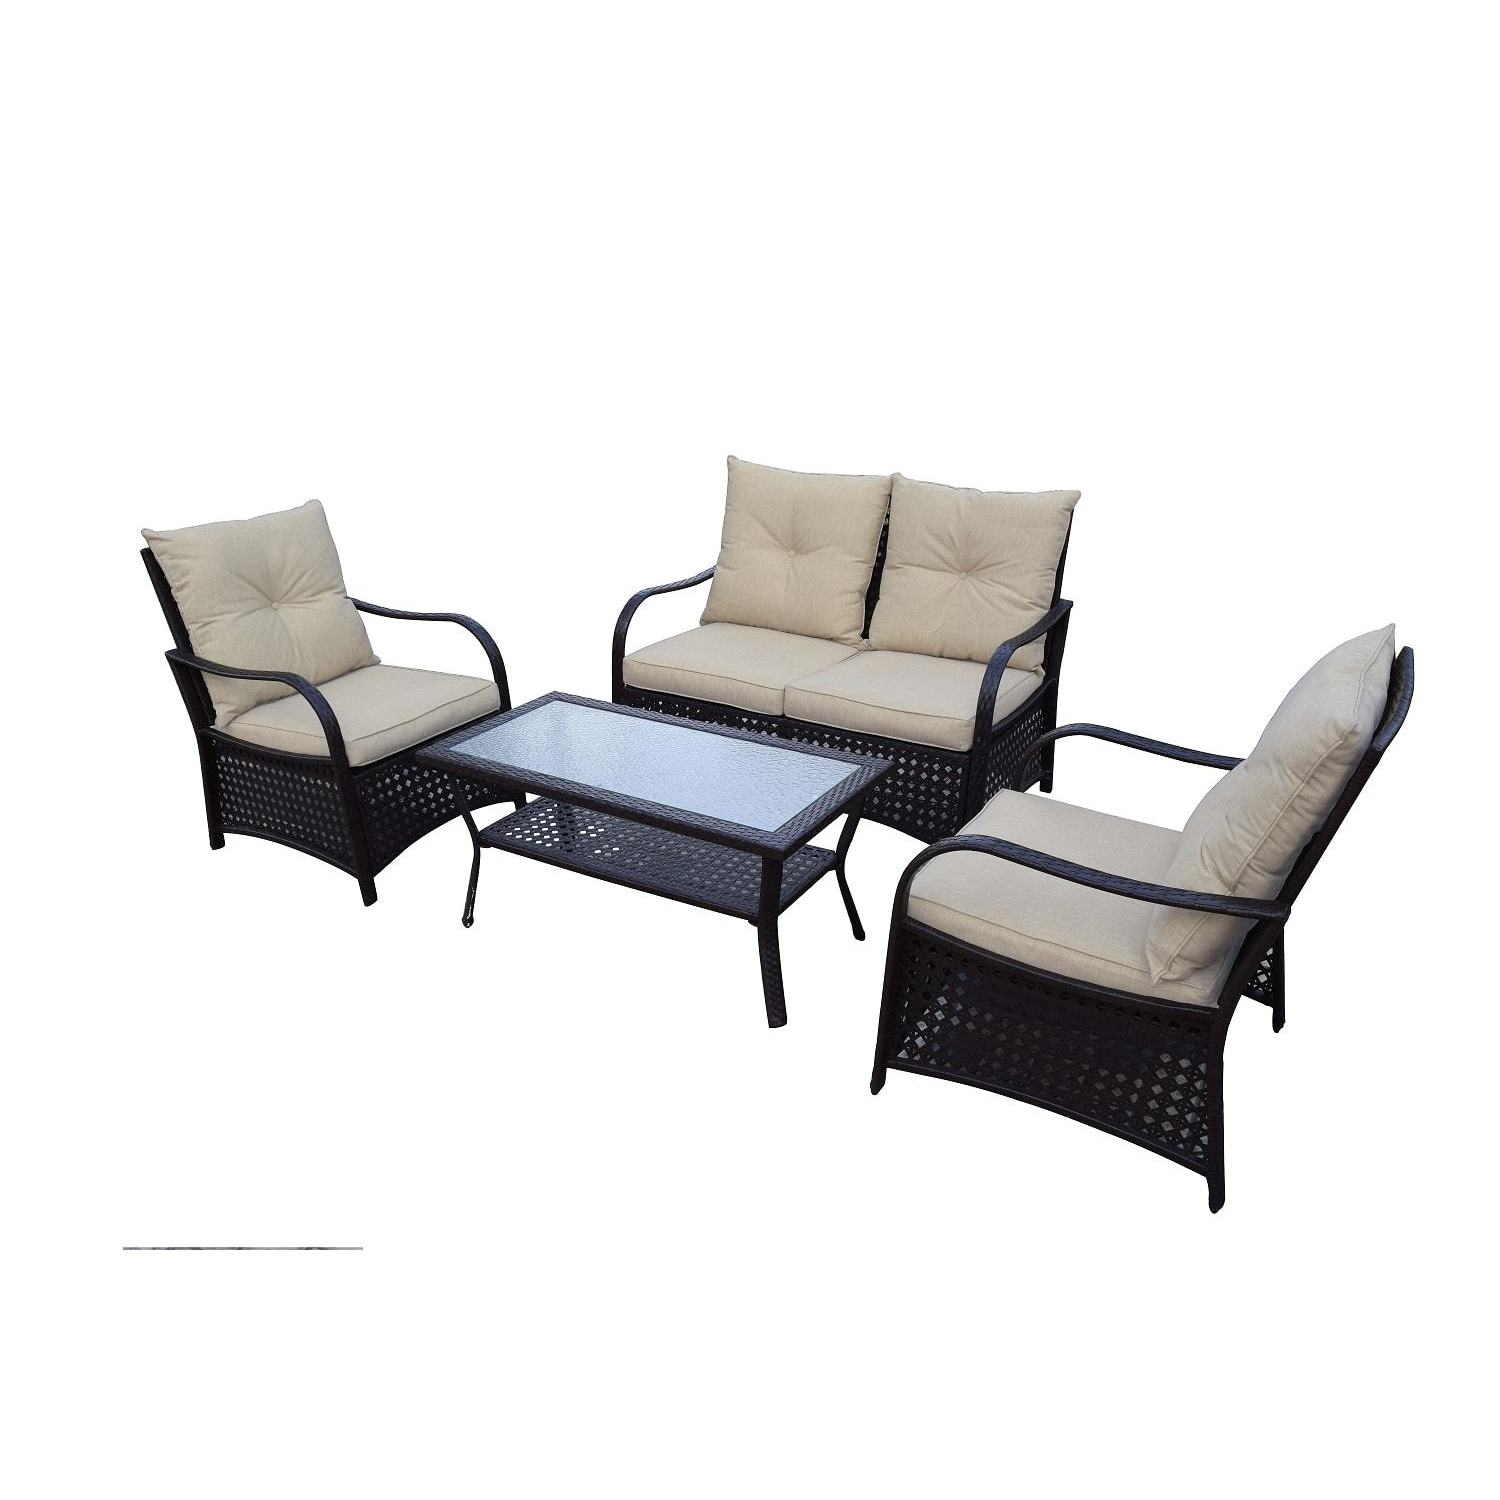 DG Casa Catalina Steel Rattan Loveseat, 2 Chair and Table...